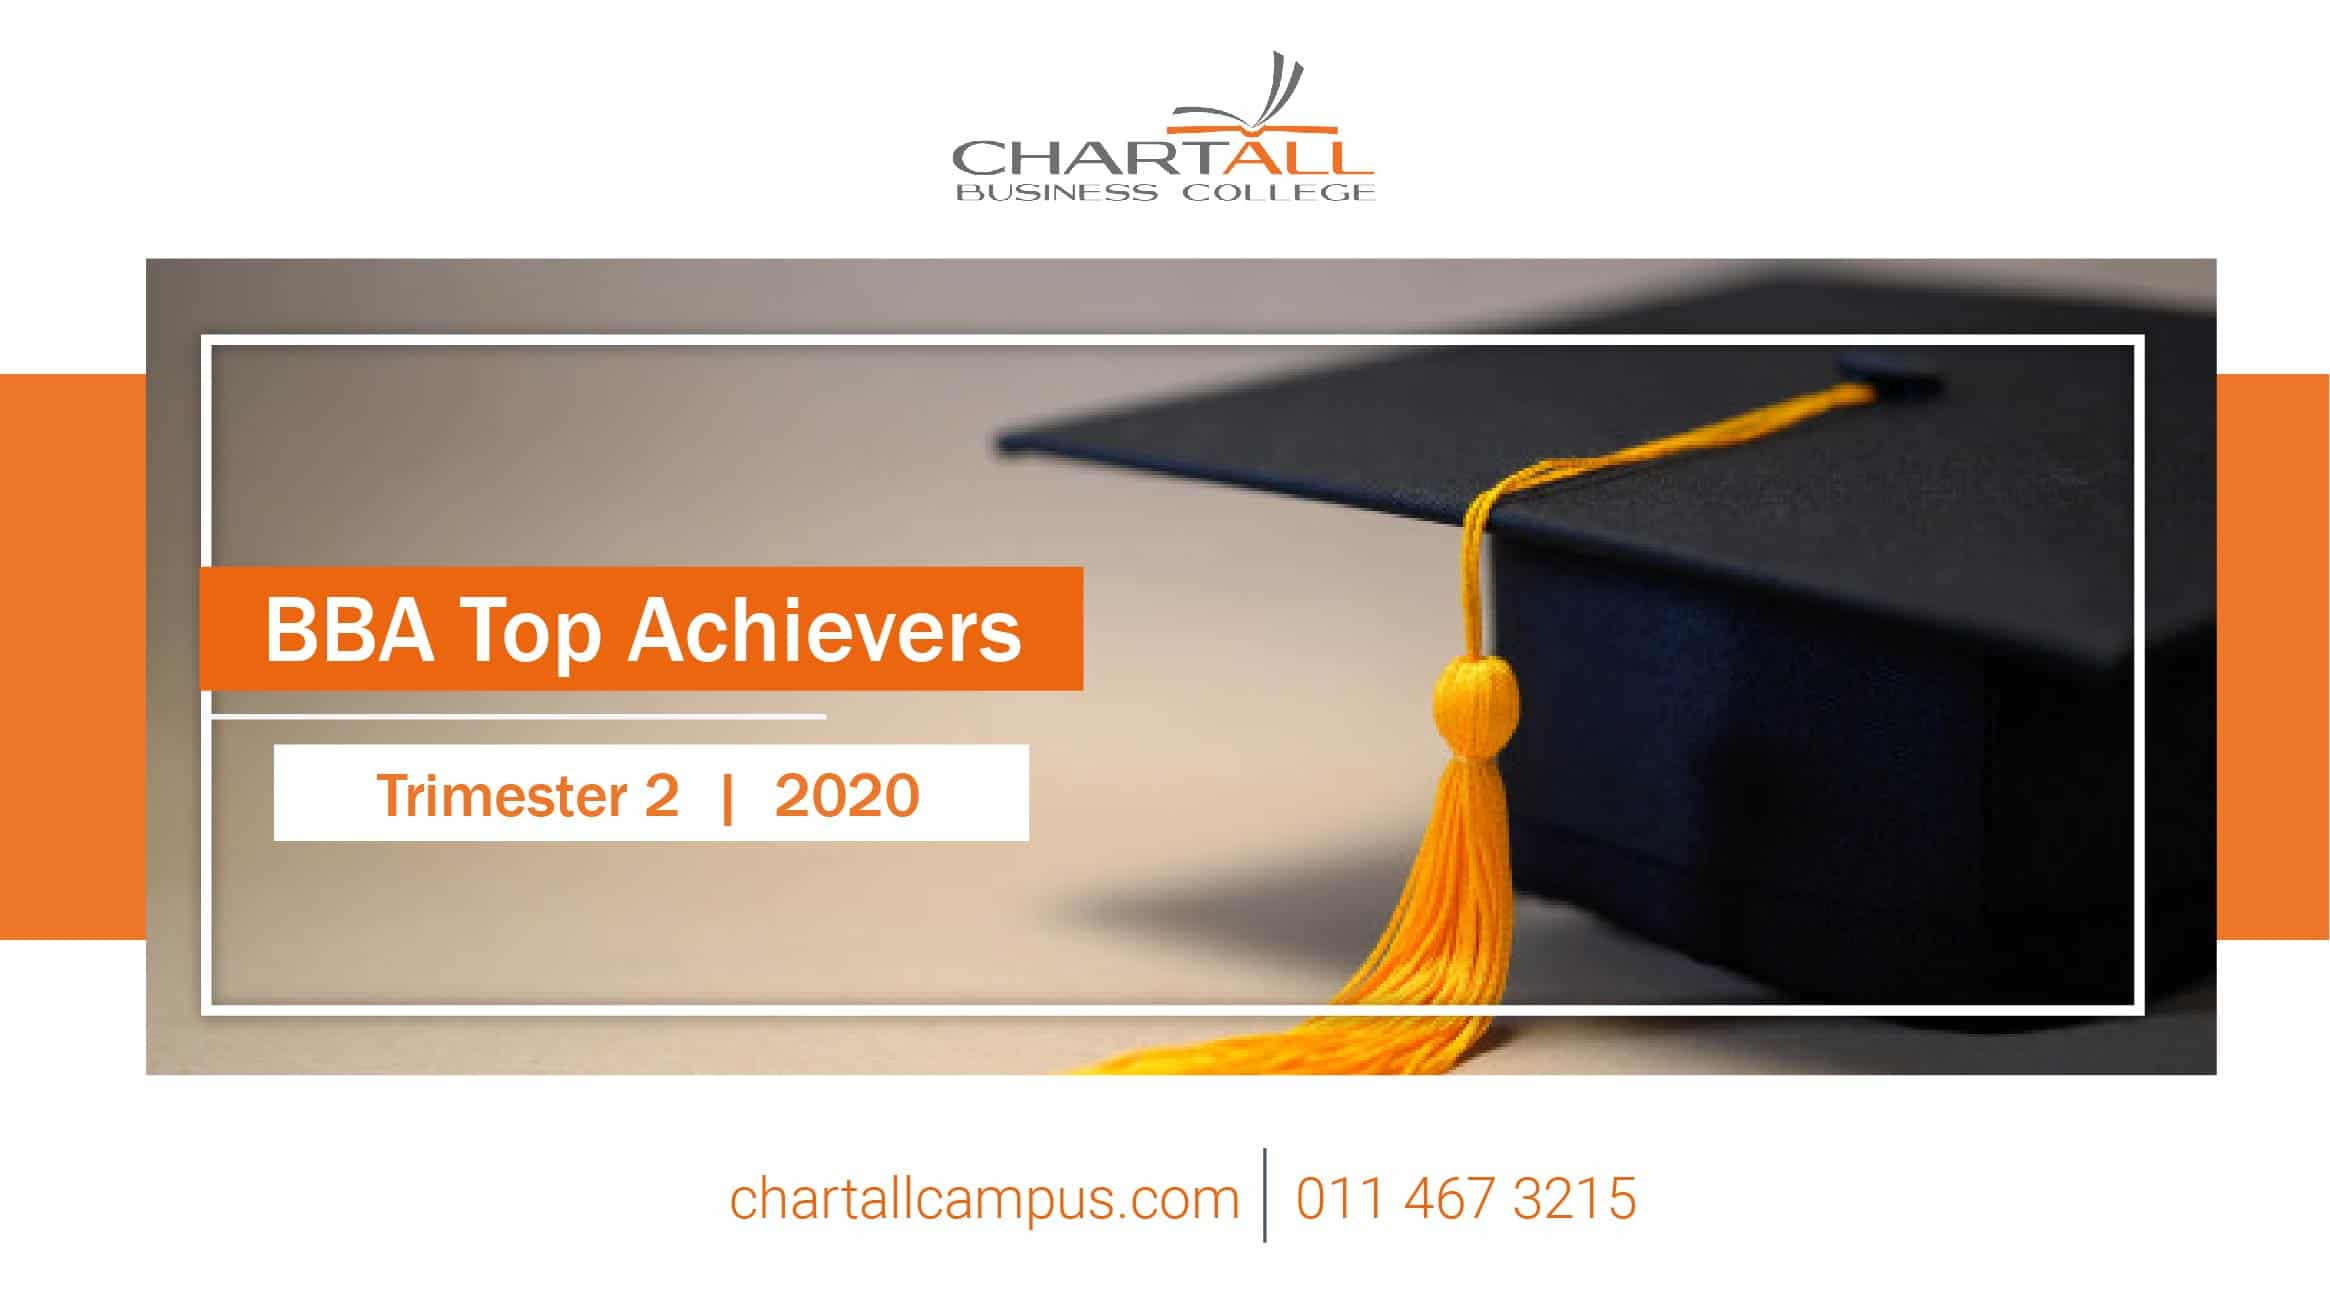 Top Achievers - Trimester 2 2020